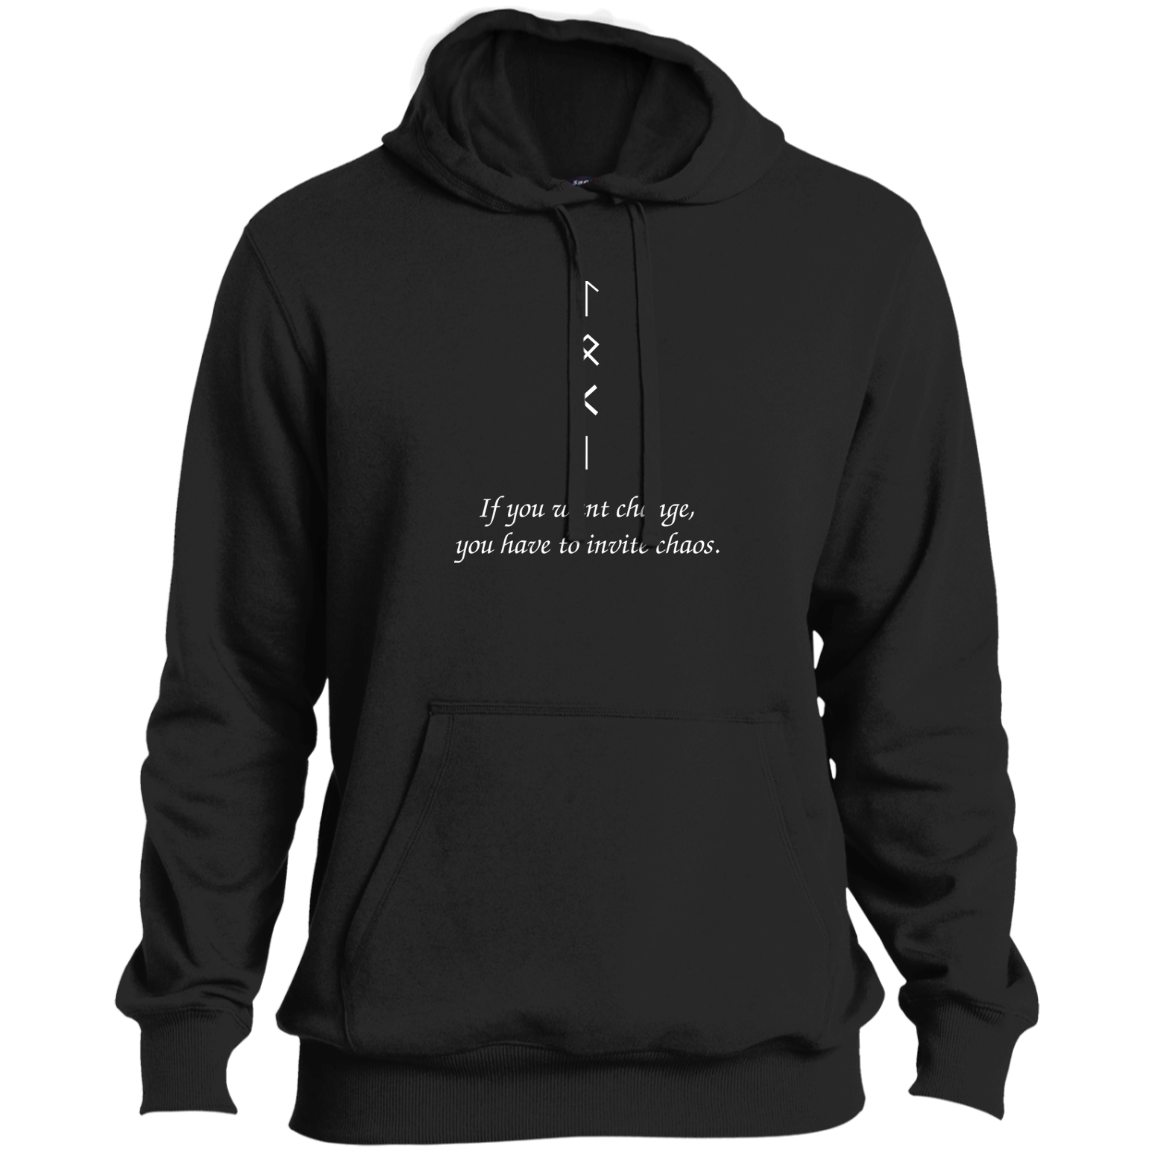 Change and Chaos Black Pullover Hoodie